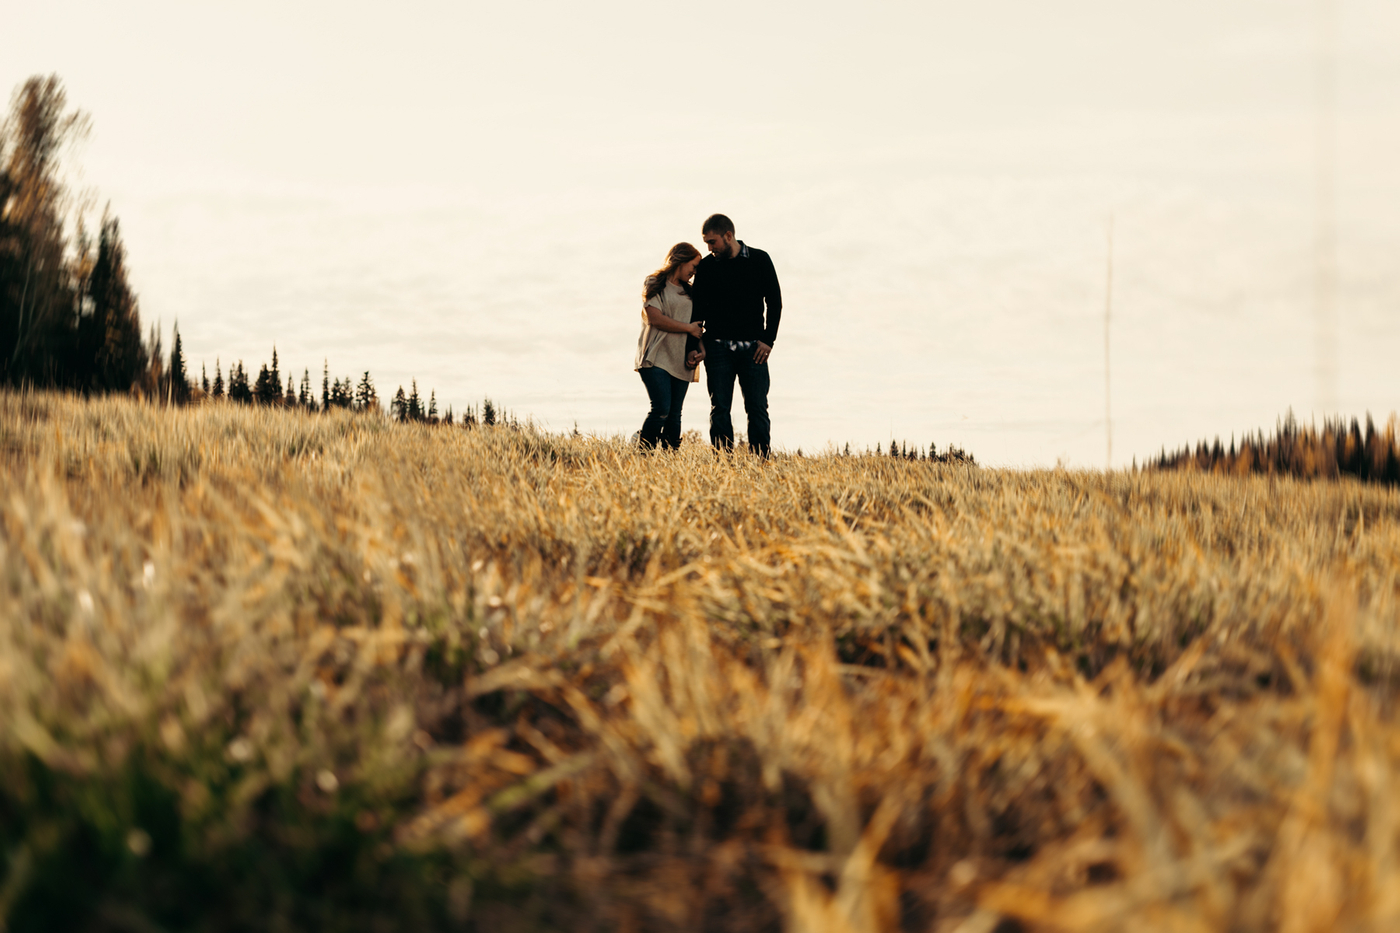 PrinceGeorge_Engagement_Photographer-6(WEB).jpg